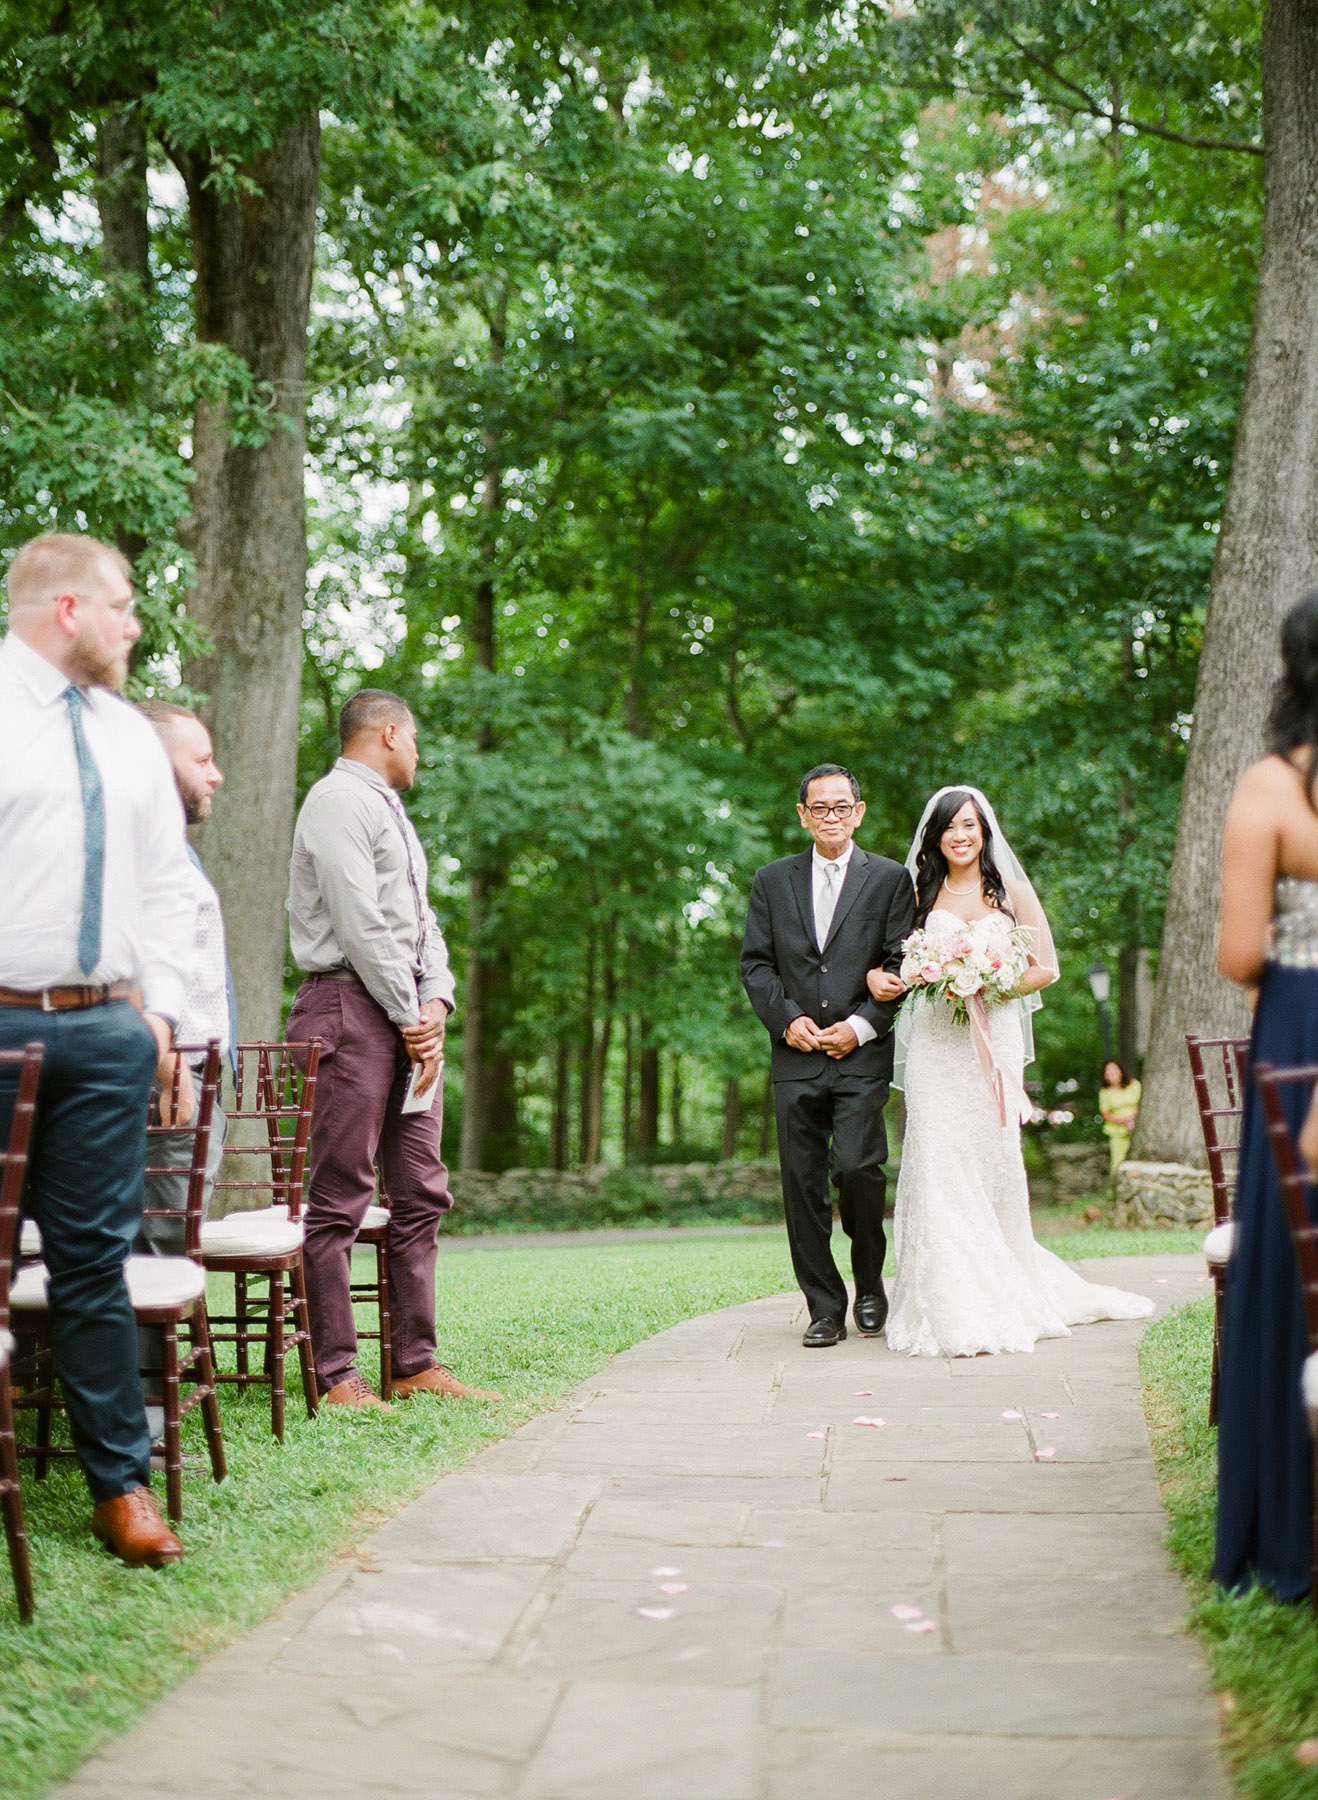 Virginia-Film-Photographer-Wedding-07.jpg